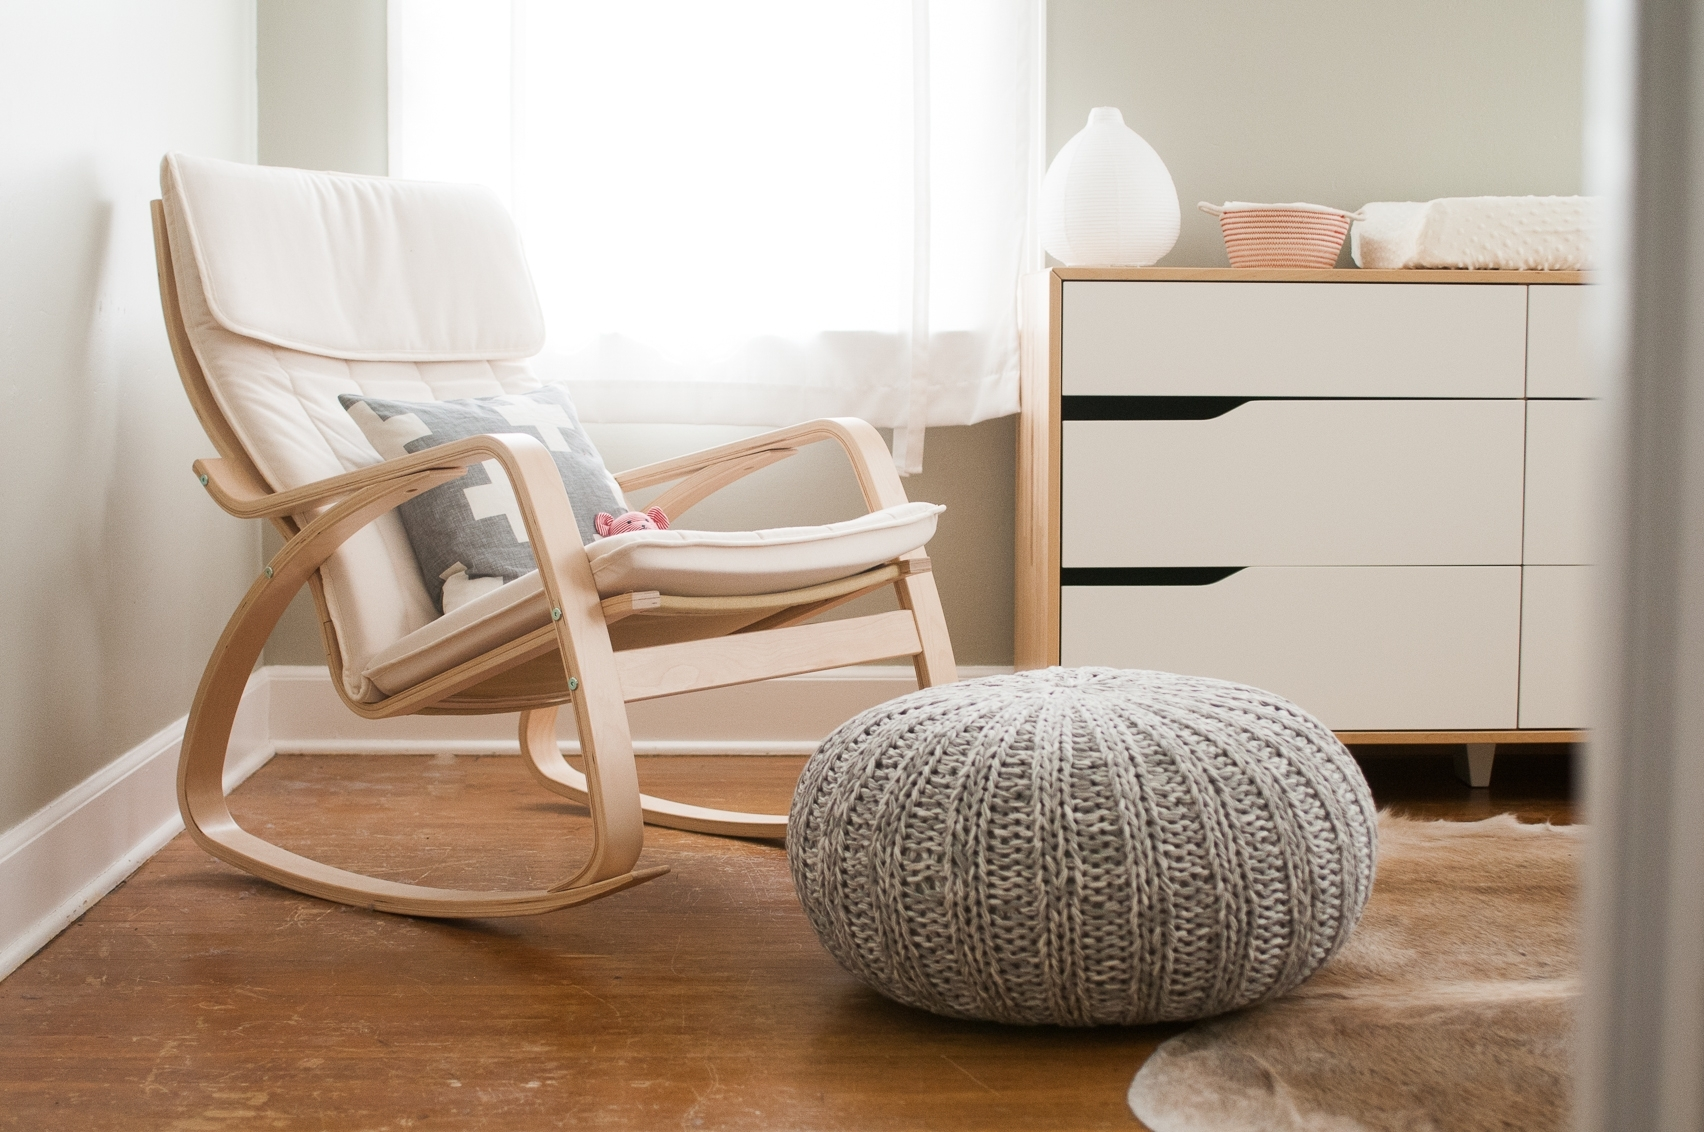 Modern Rocking Chair For Nursery | Homesfeed Intended For Rocking Chairs For Nursery (#8 of 15)